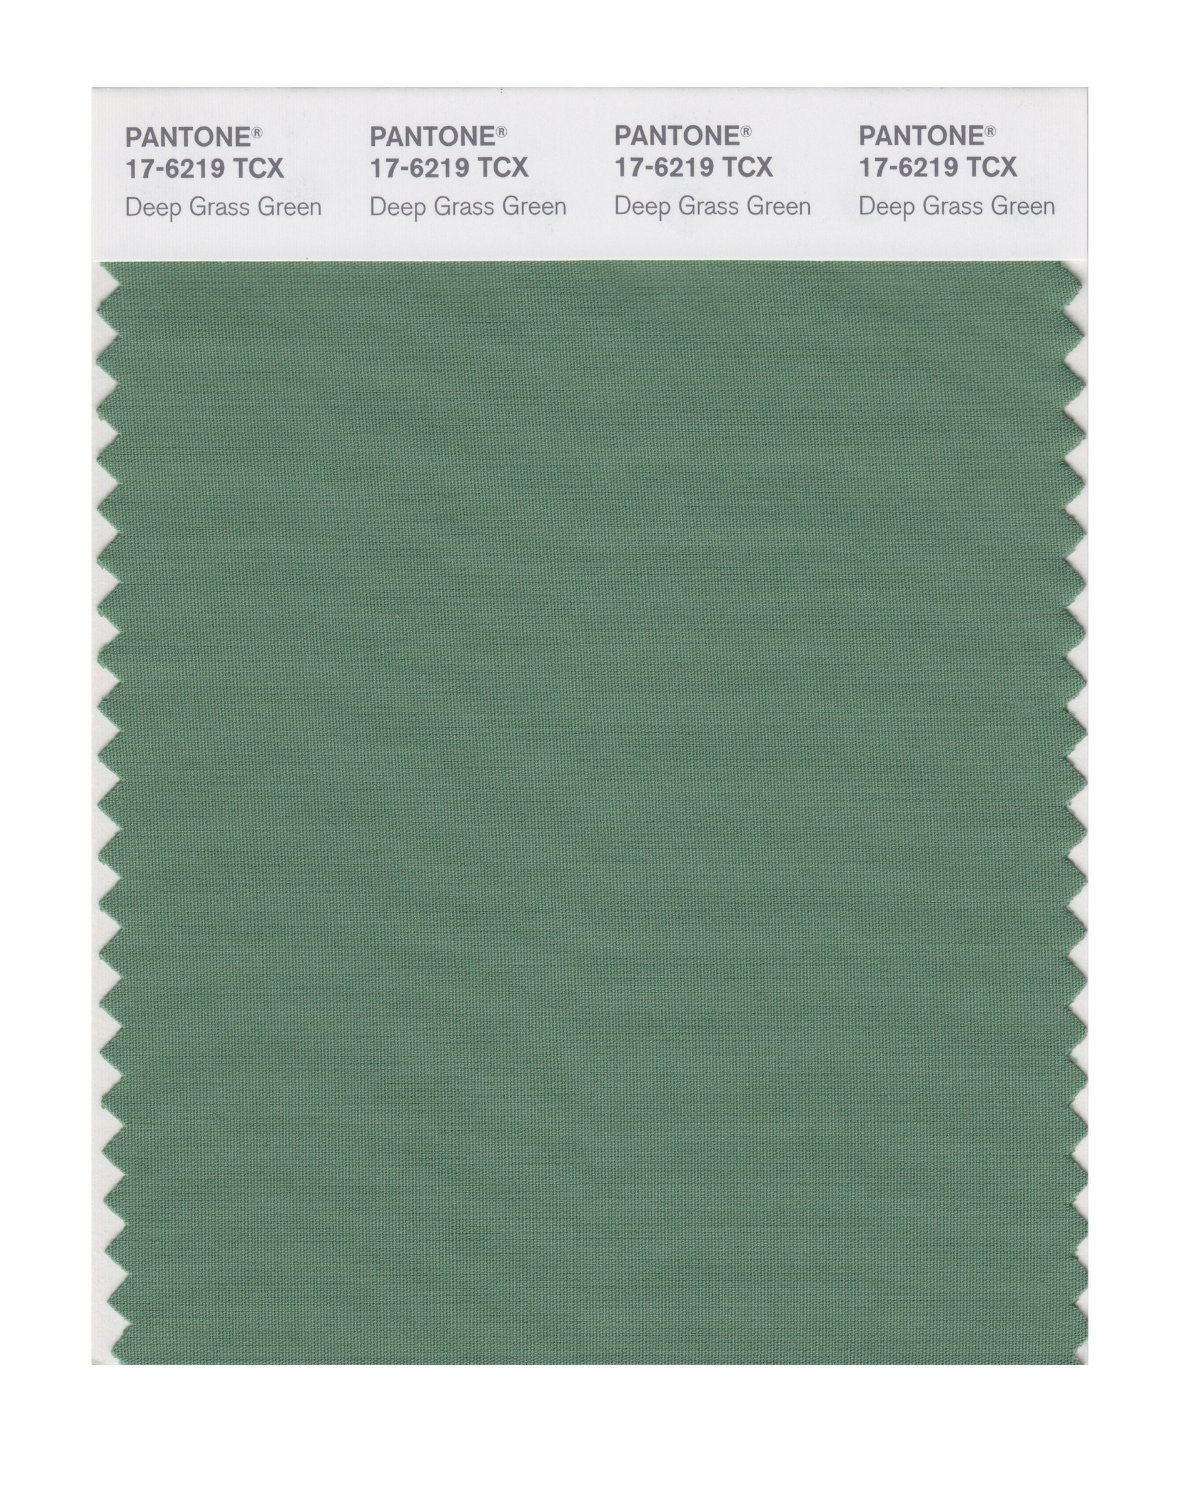 Pantone Smart Swatch 17-6219 Deep Grass Green